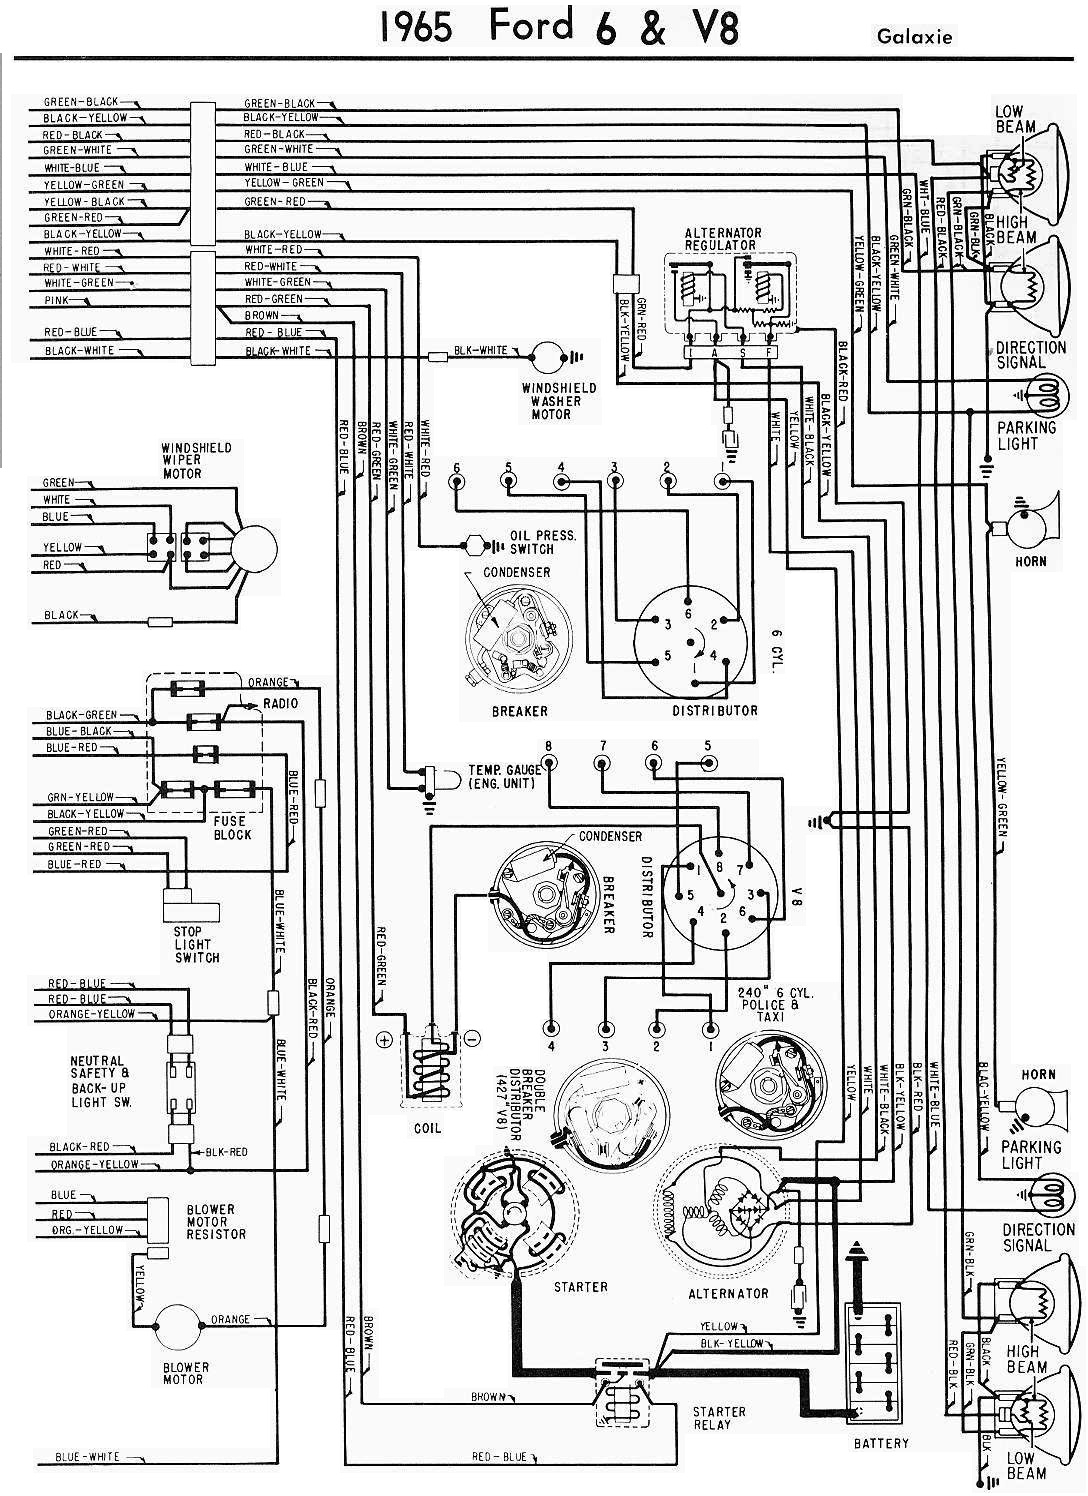 small resolution of 1965 ford galaxie complete electrical wiring diagram part ford tractor ignition switch wiring 1956 ford wiring